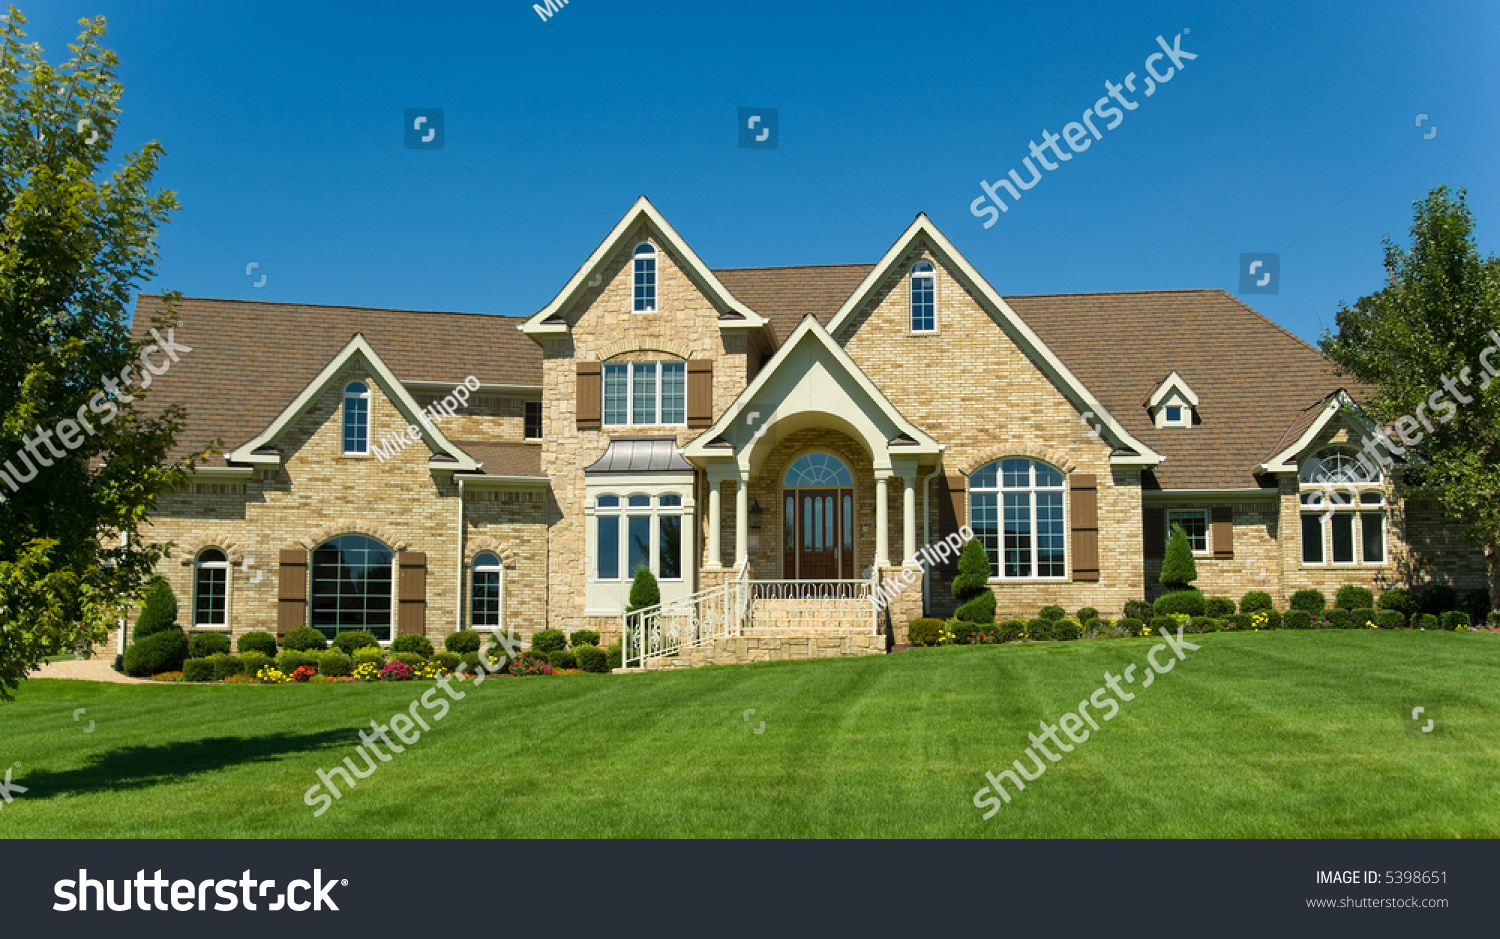 Beautiful two story home landscaped yard stock photo for Beautiful two story homes